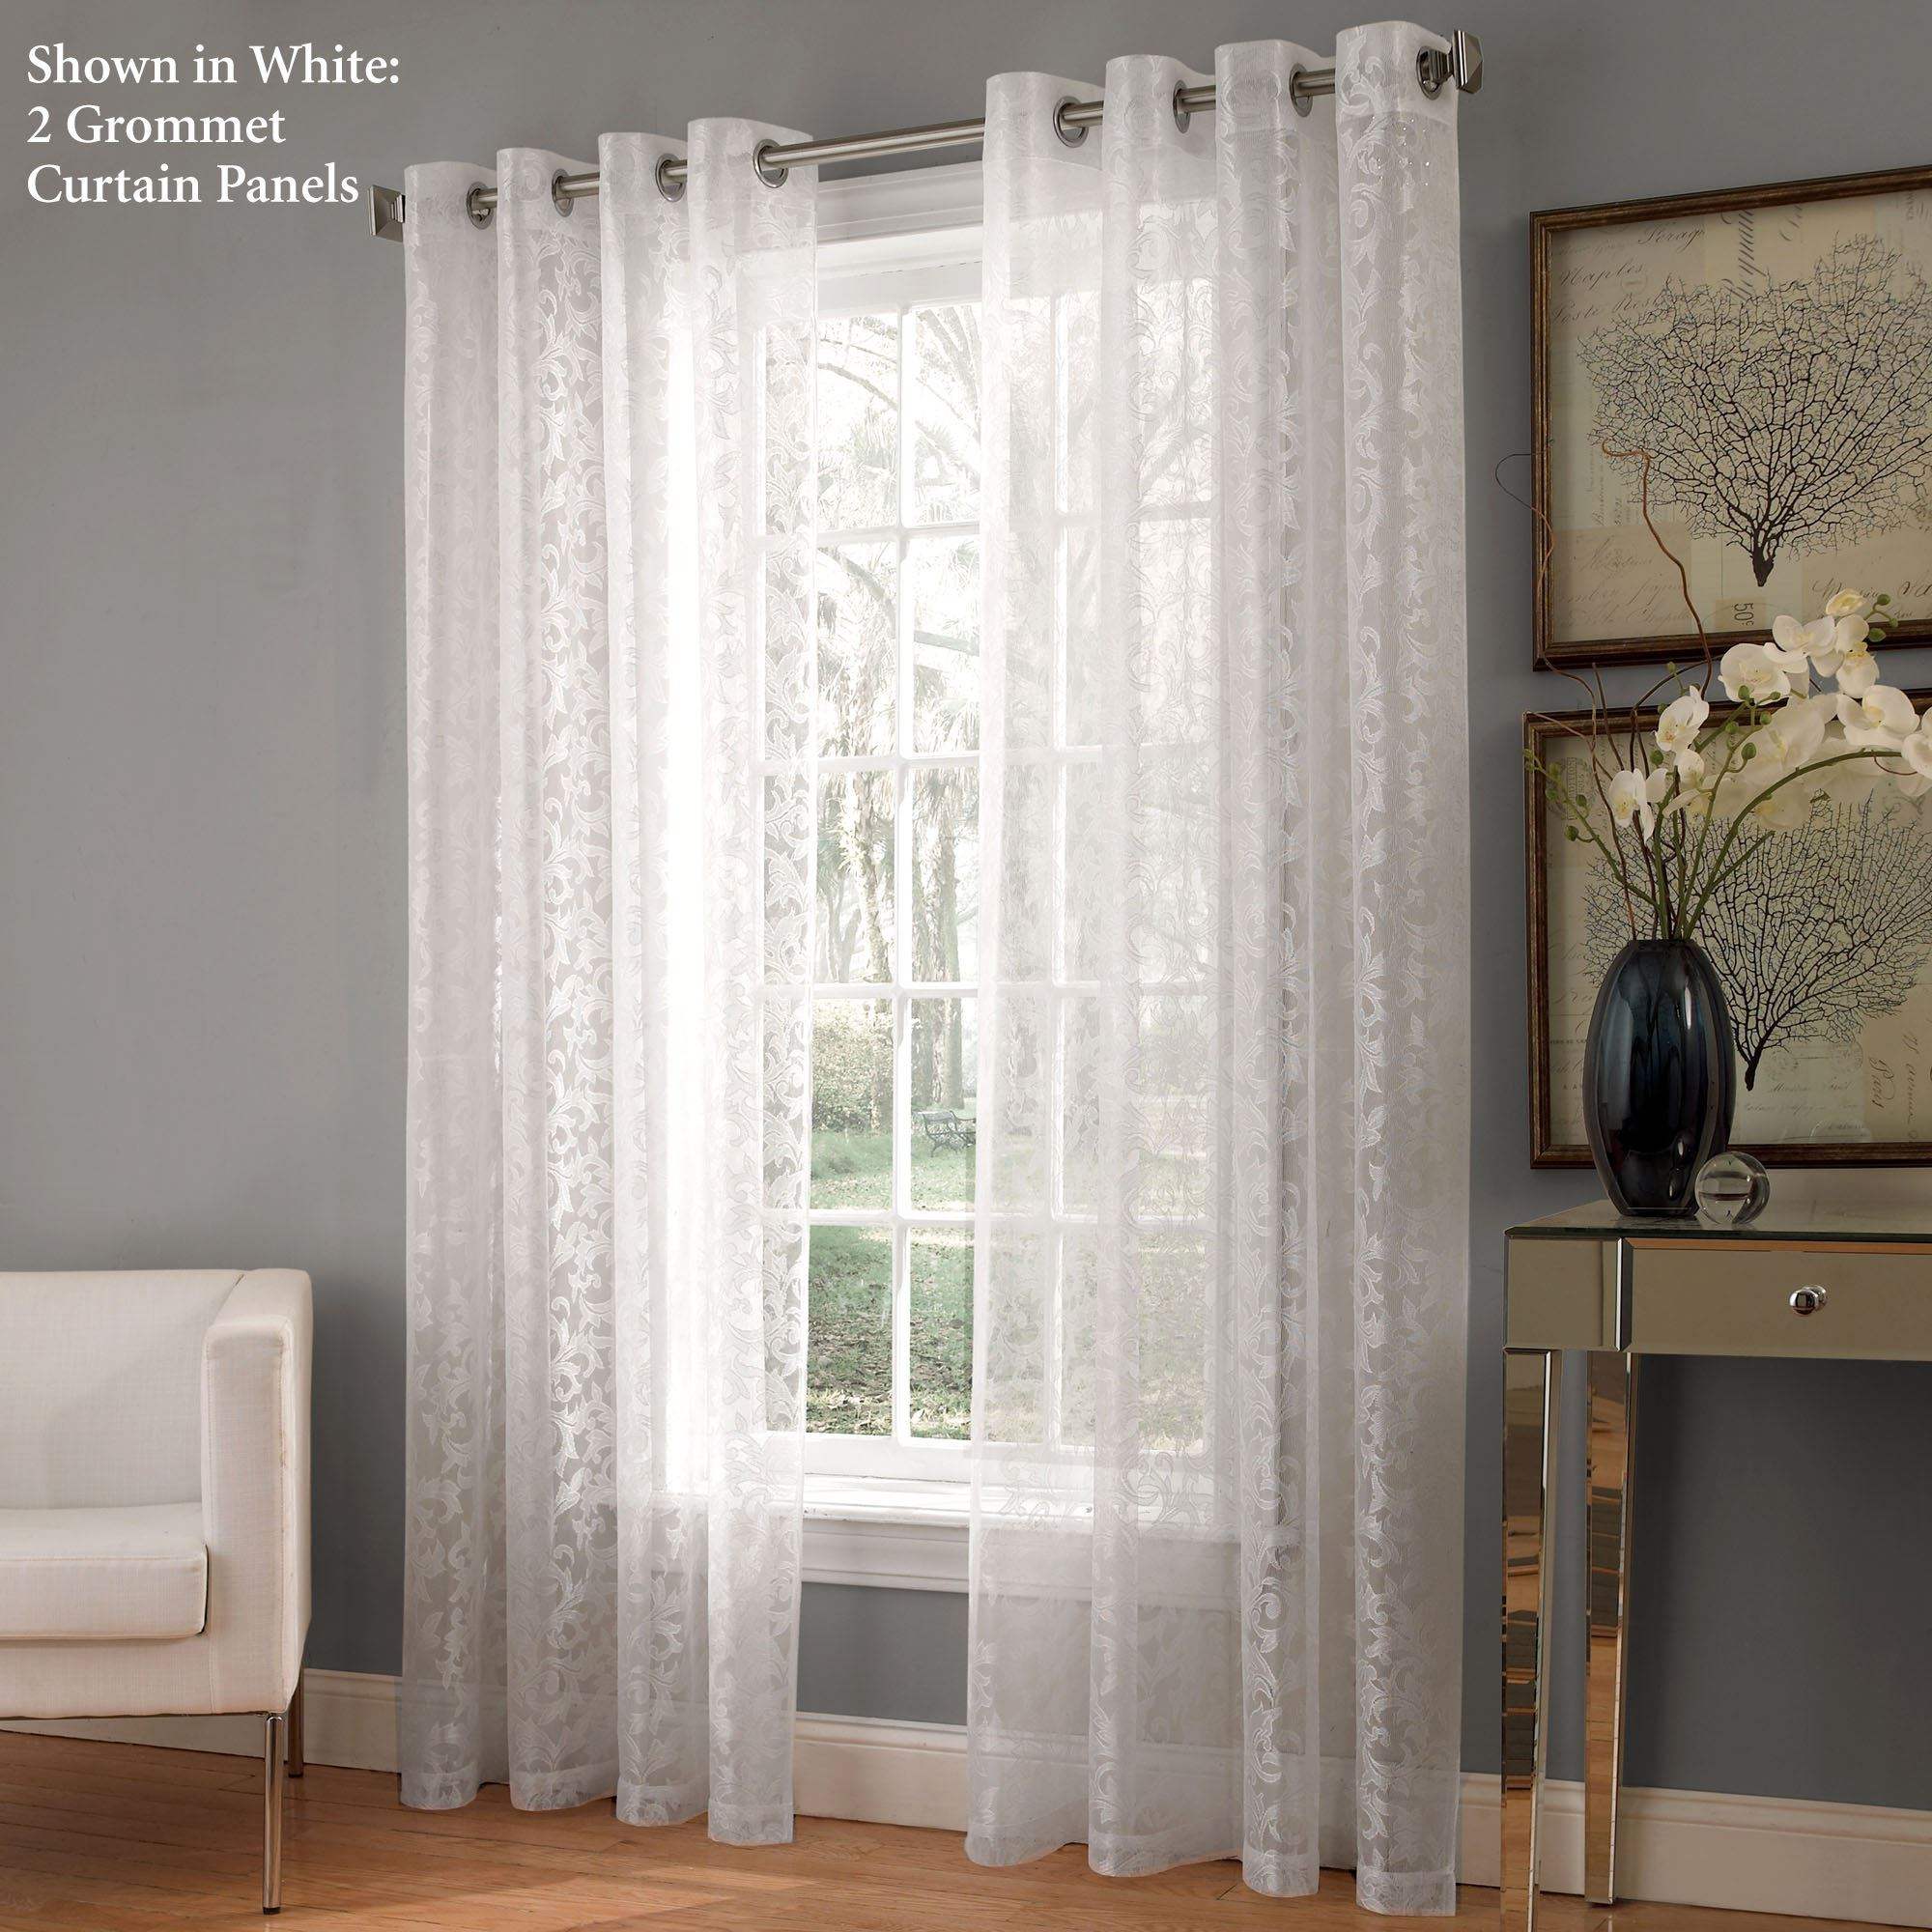 awesome window room curtain curtains large valances drapery panel of living size treatments bedroom for lace